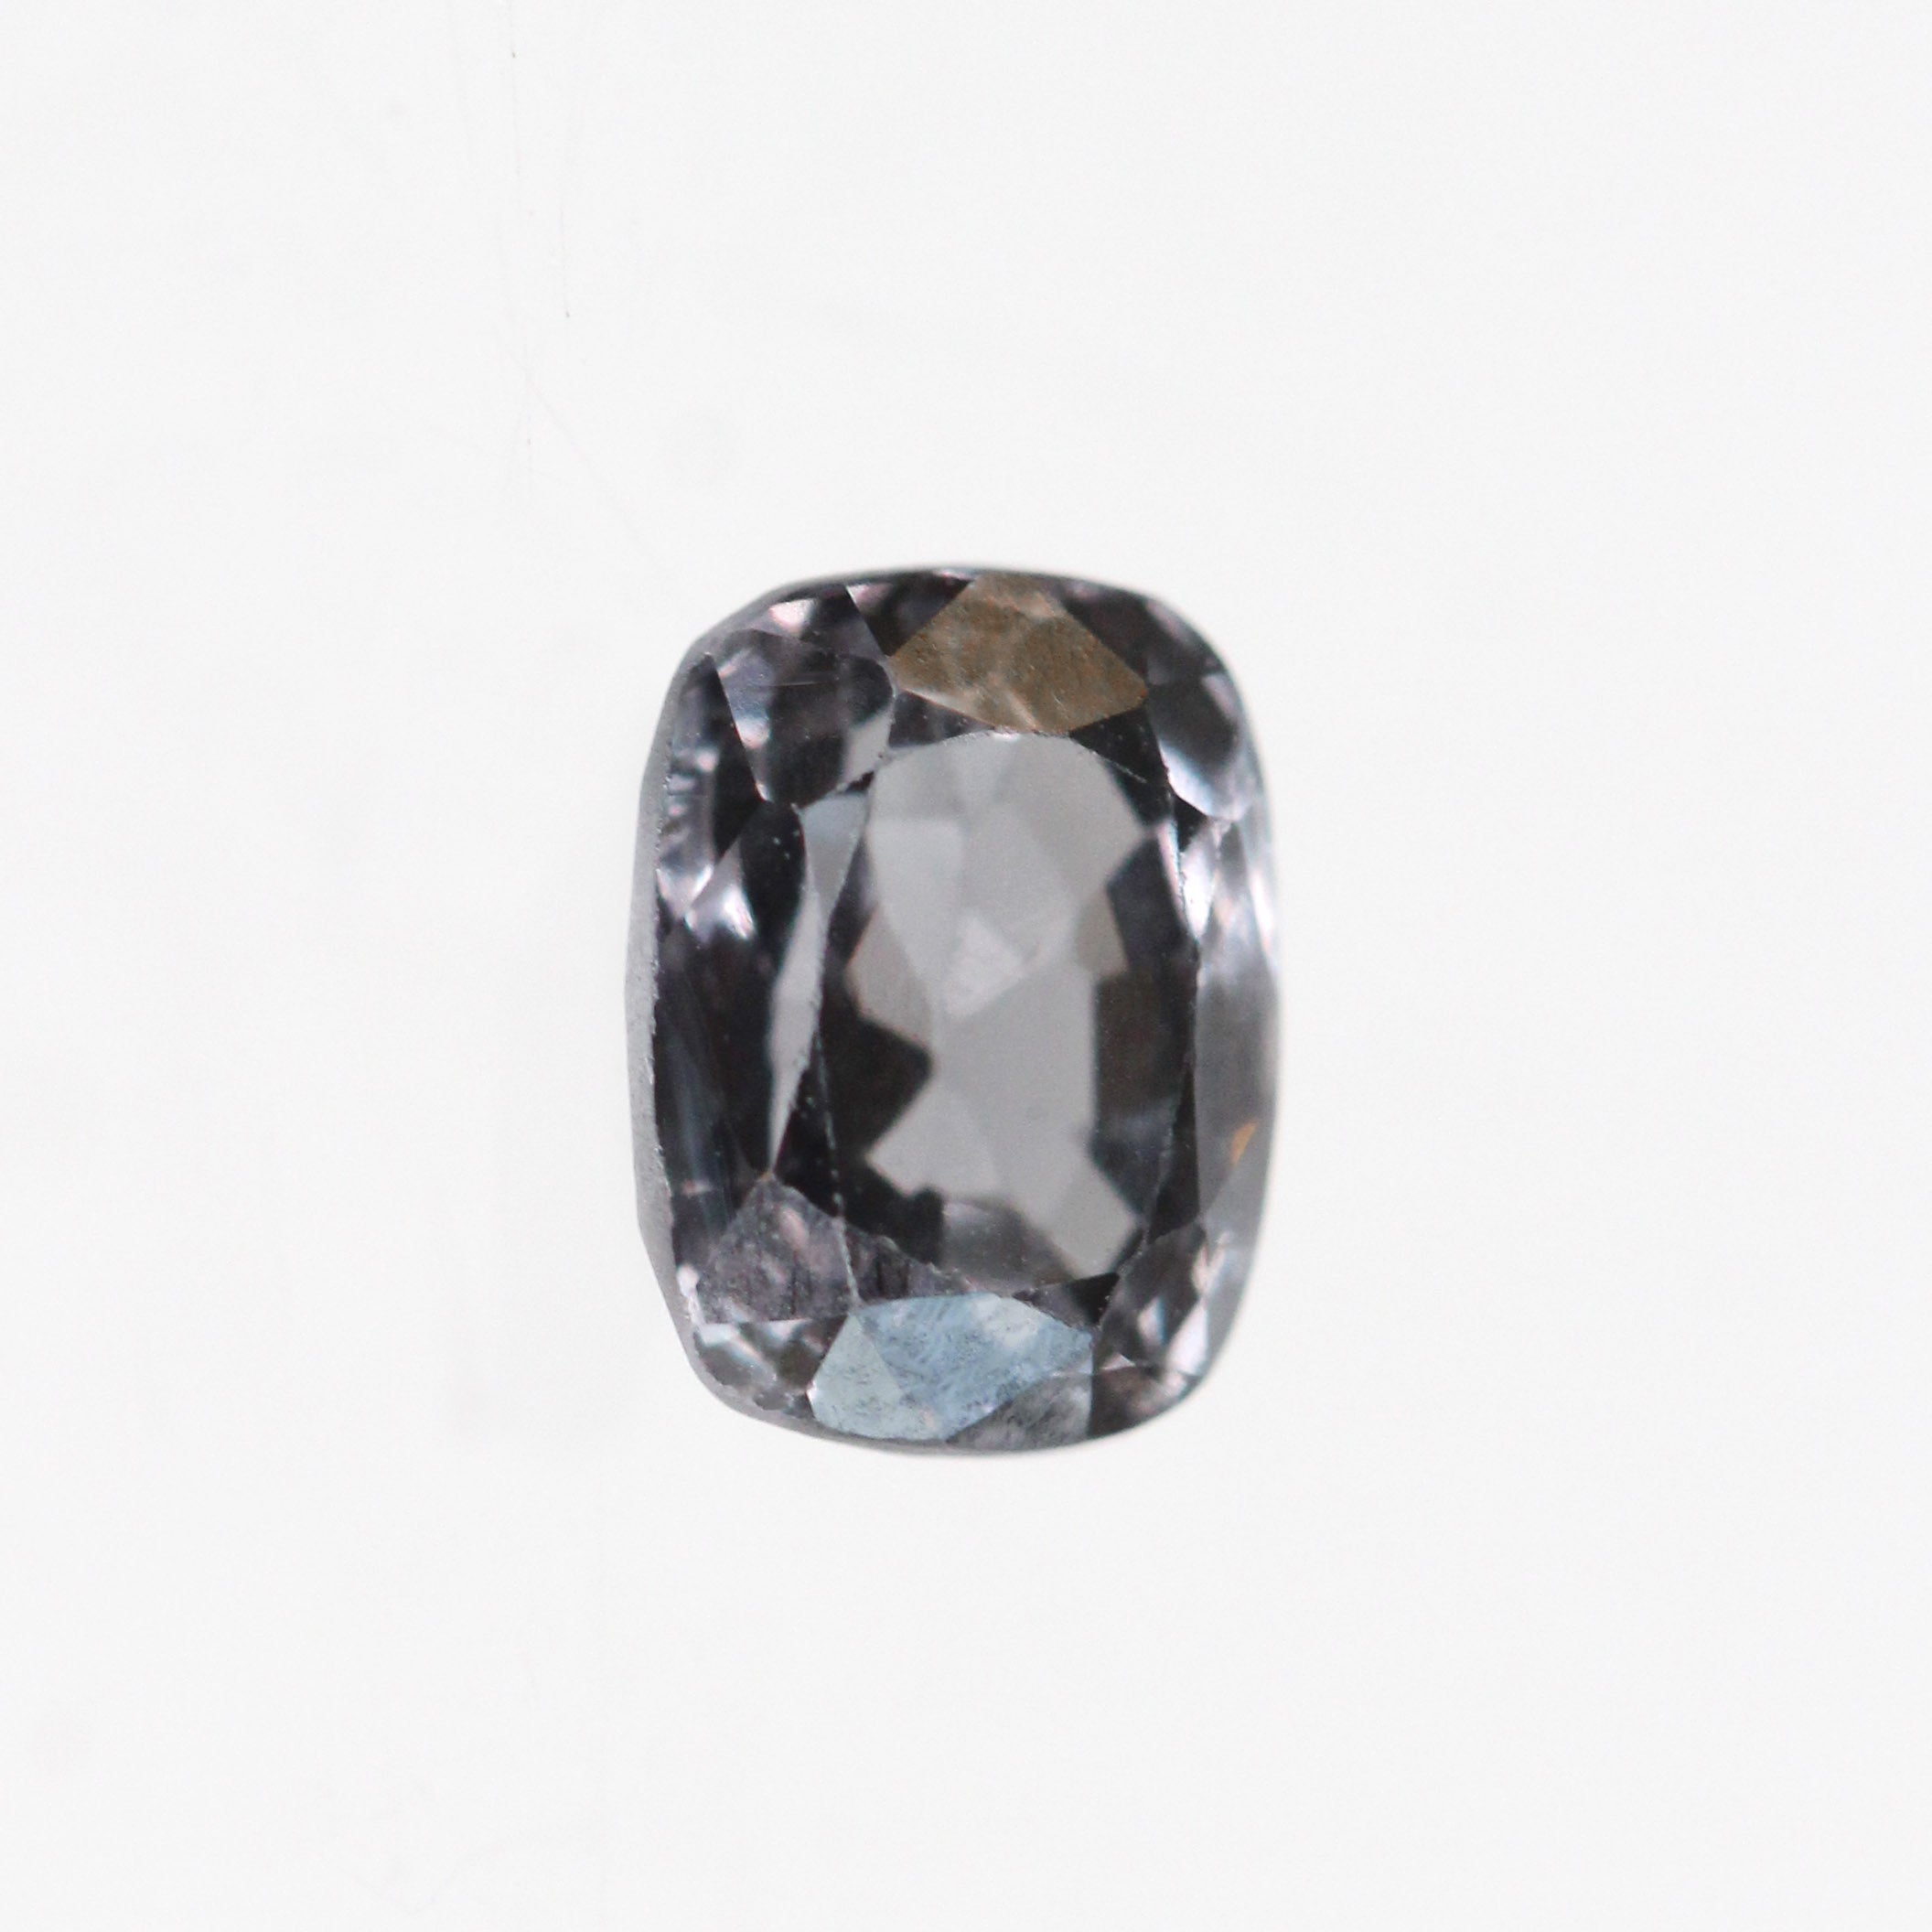 .70ct Cushion Cut Spinel for Custom Work - Inventory Code SP6.4 - Salt & Pepper Celestial Diamond Engagement Rings and Wedding Bands  by Midwinter Co.